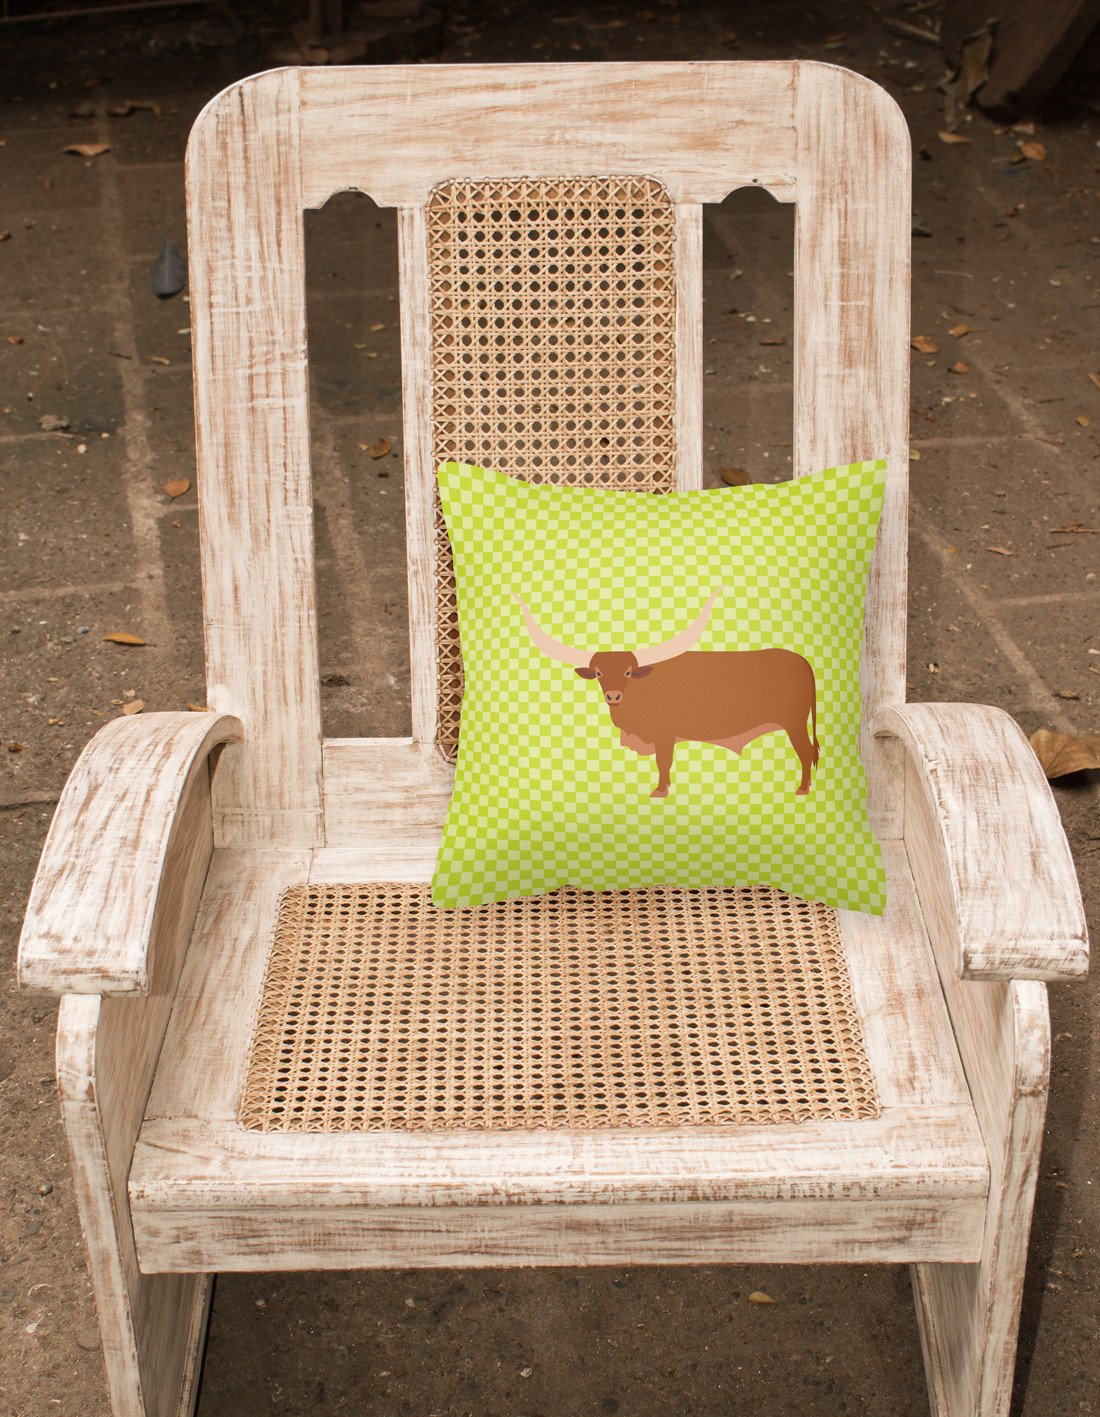 Ankole-Watusu Cow Green Fabric Decorative Pillow BB7649PW1818 by Caroline's Treasures